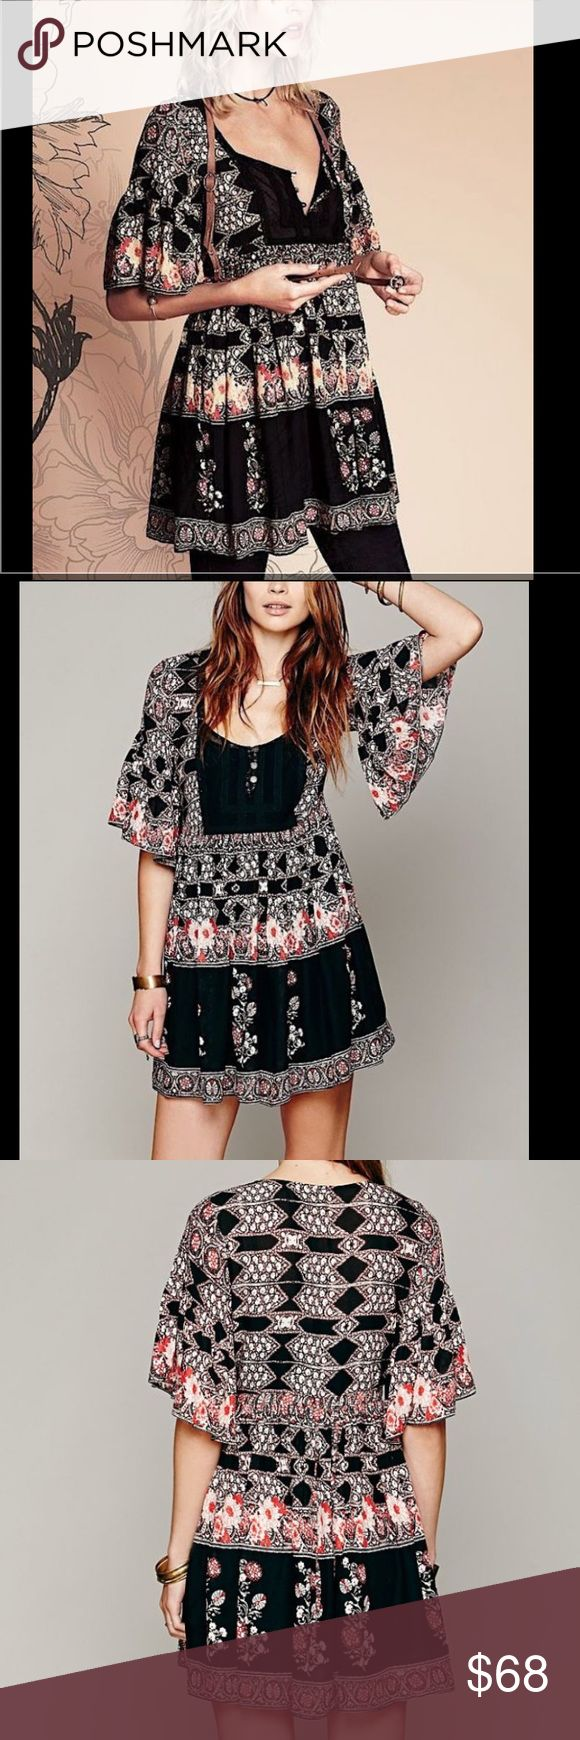 """🖤FREE PEOPLE🖤BOHO SWING DRESS🖤 This is a stunning piece from free people flutter sleeves swing dress back drawstring tie for shape definition lace button front all buttons intact pull over styling gathered waist. 😍POCKETS😍 100% rayon machine washable measurements taken flat bust 17"""" waist 15"""" length 33"""" Free People Dresses Mini"""